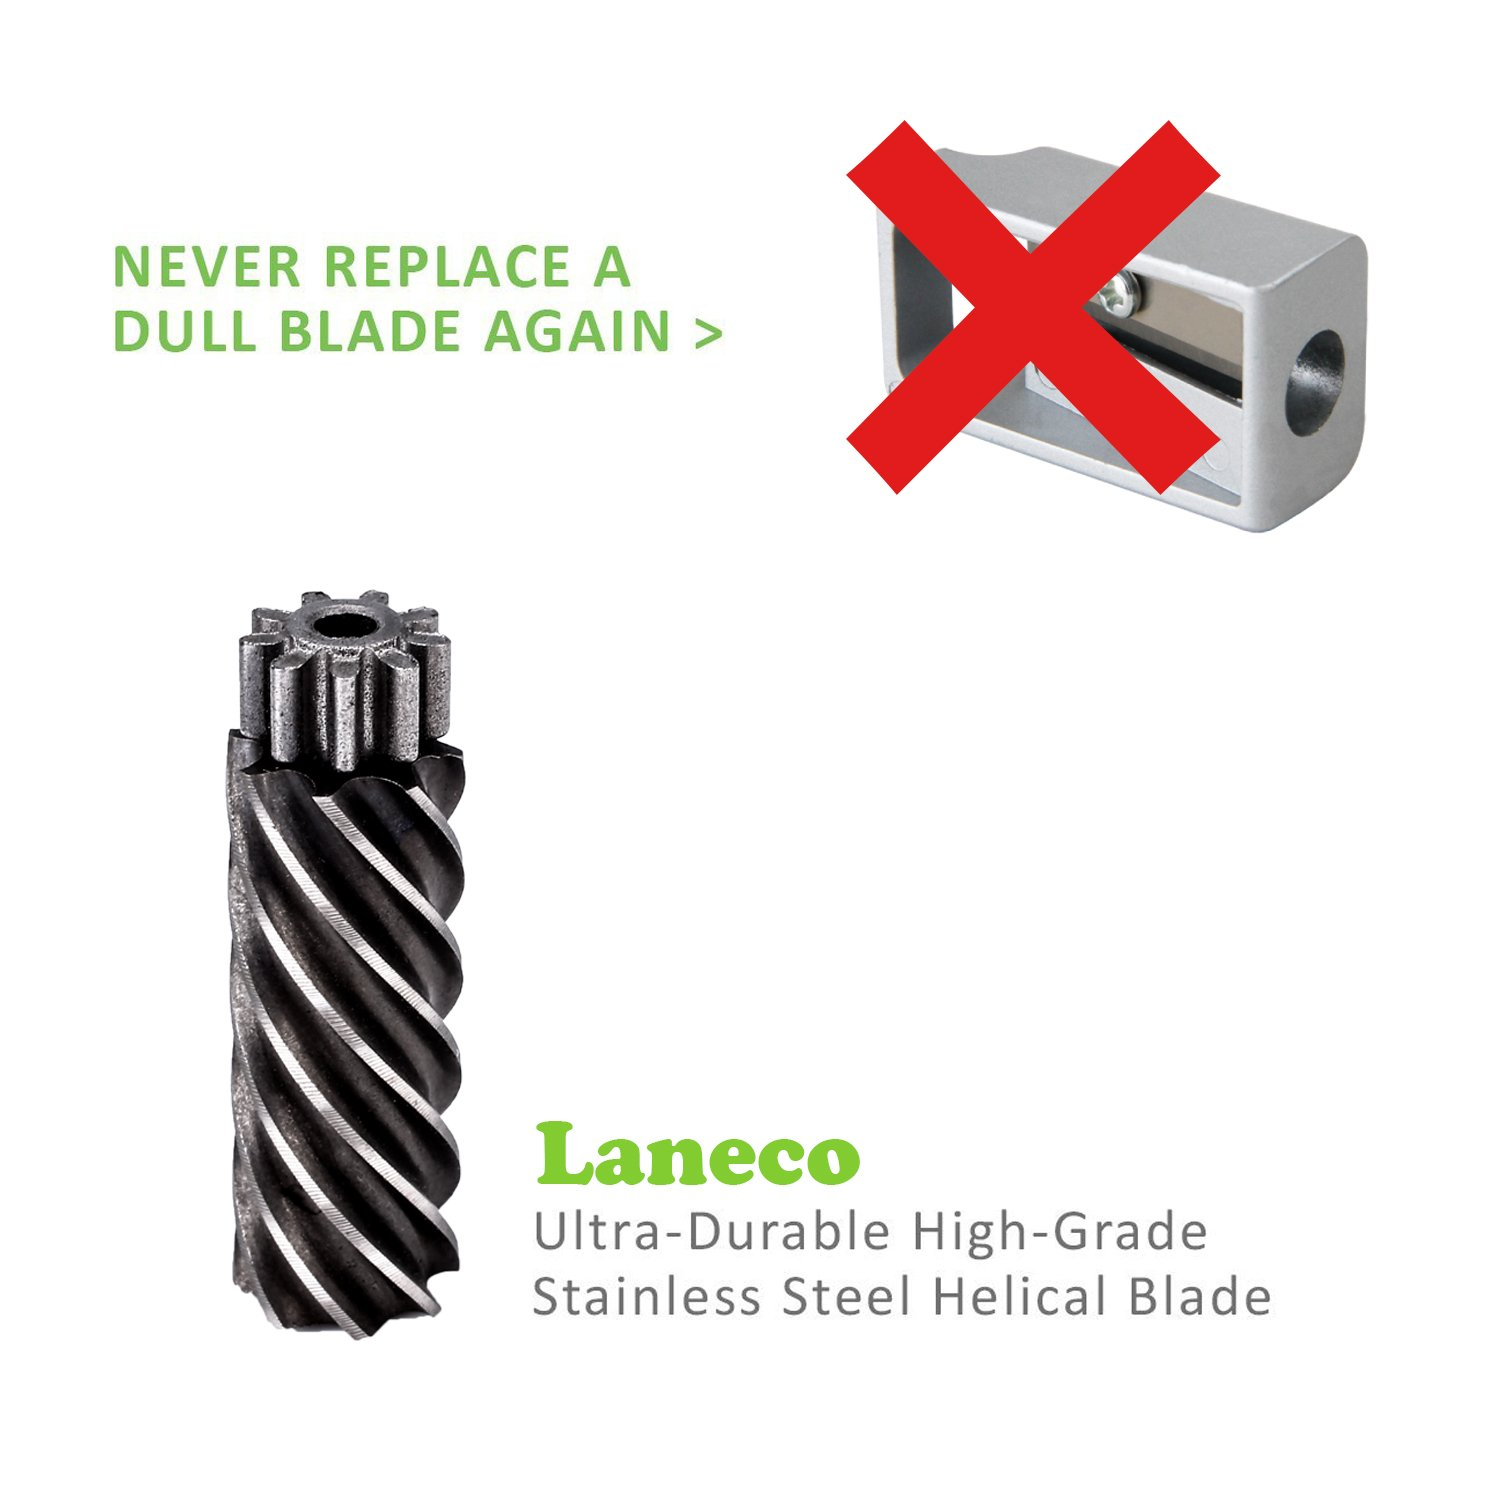 Battery Operated Electric pencil sharpener, Laneco Heavy Duty Helical Blade Pencil Sharpener for Classroom, Office, School, Kids, Teachers, Artists and Adults by Laneco (Image #4)